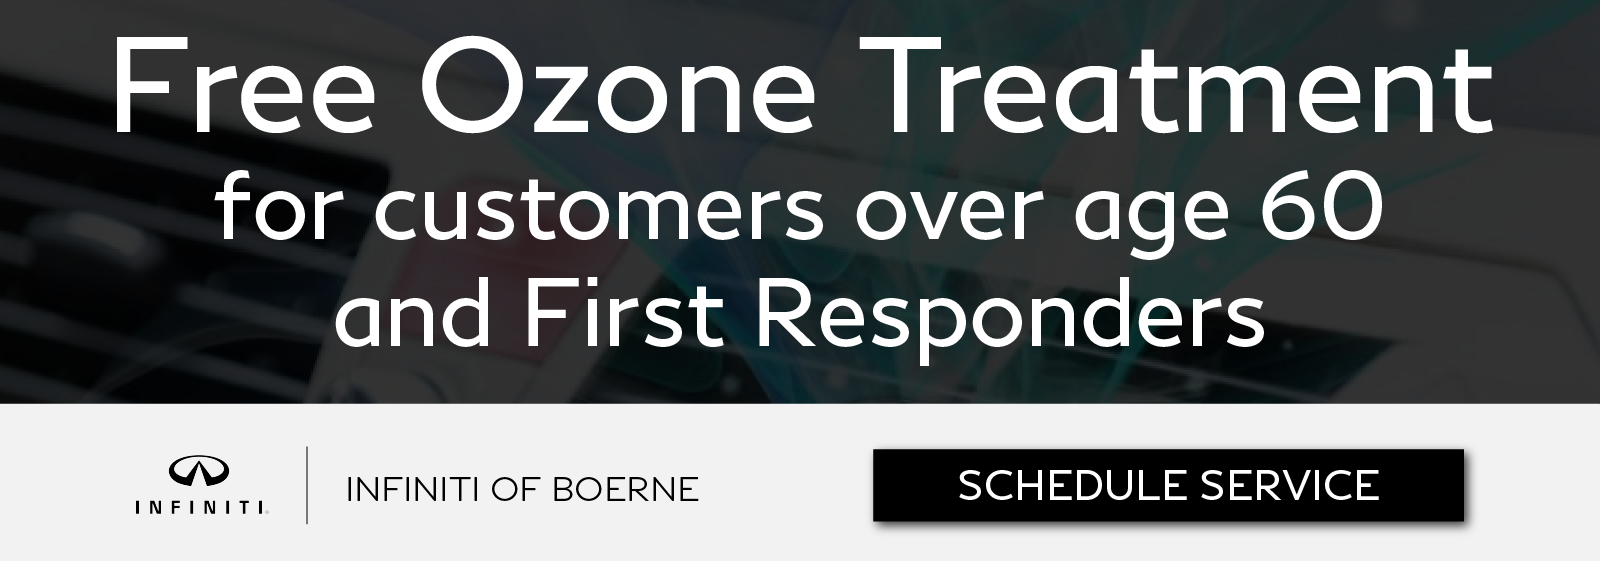 Free Ozone Treatment for customers over age 60 and First Responders. Click to schedule service